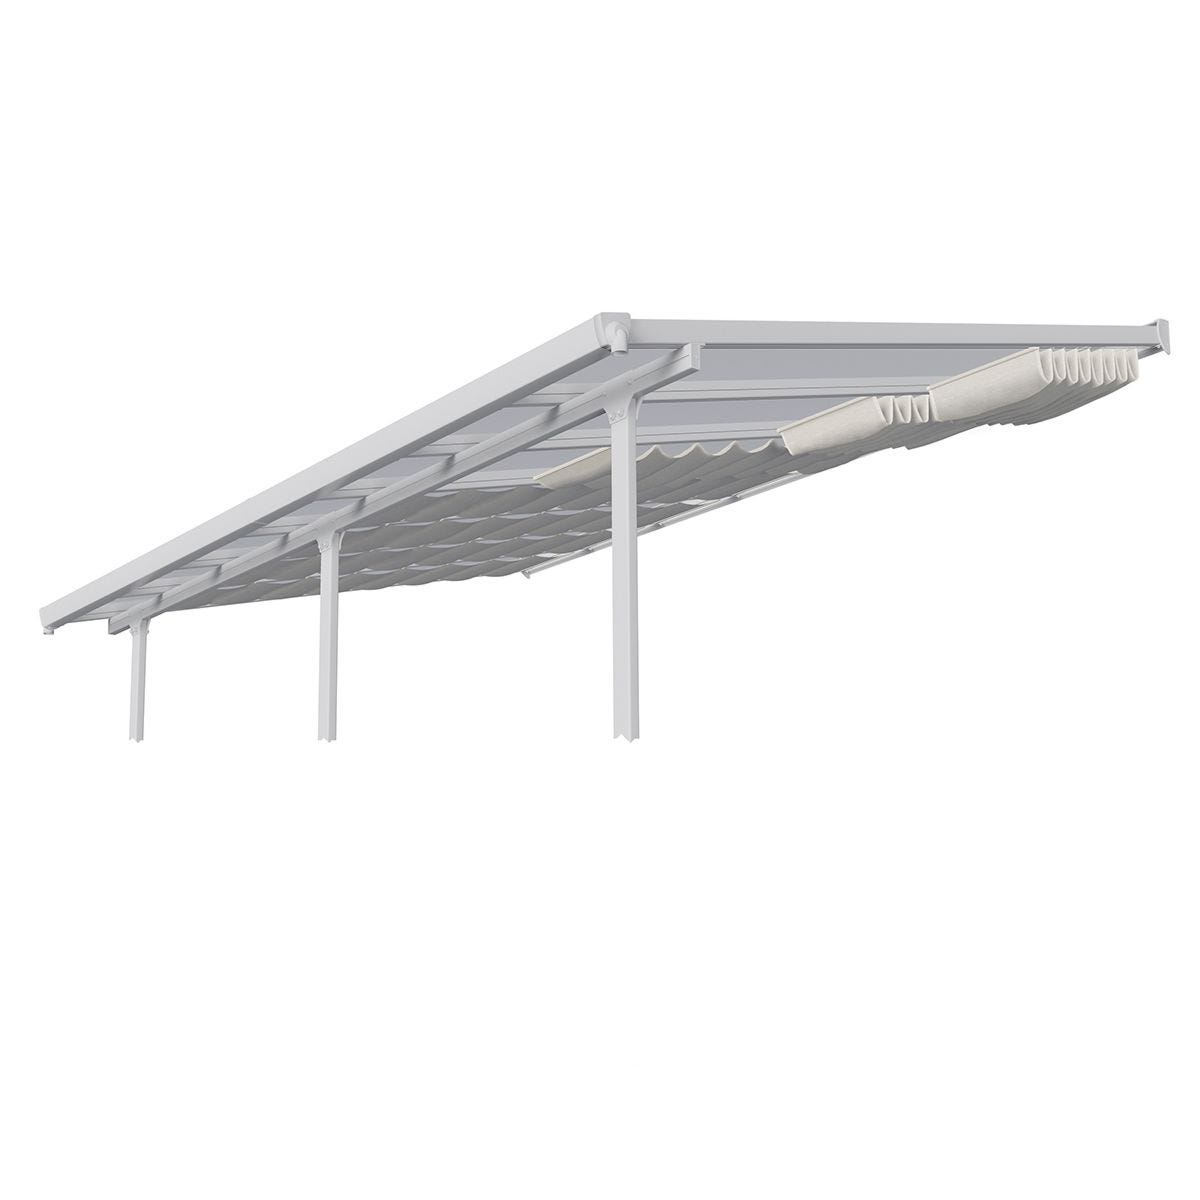 Palram Patio Cover Roof Blinds 3m x 5.46m - White